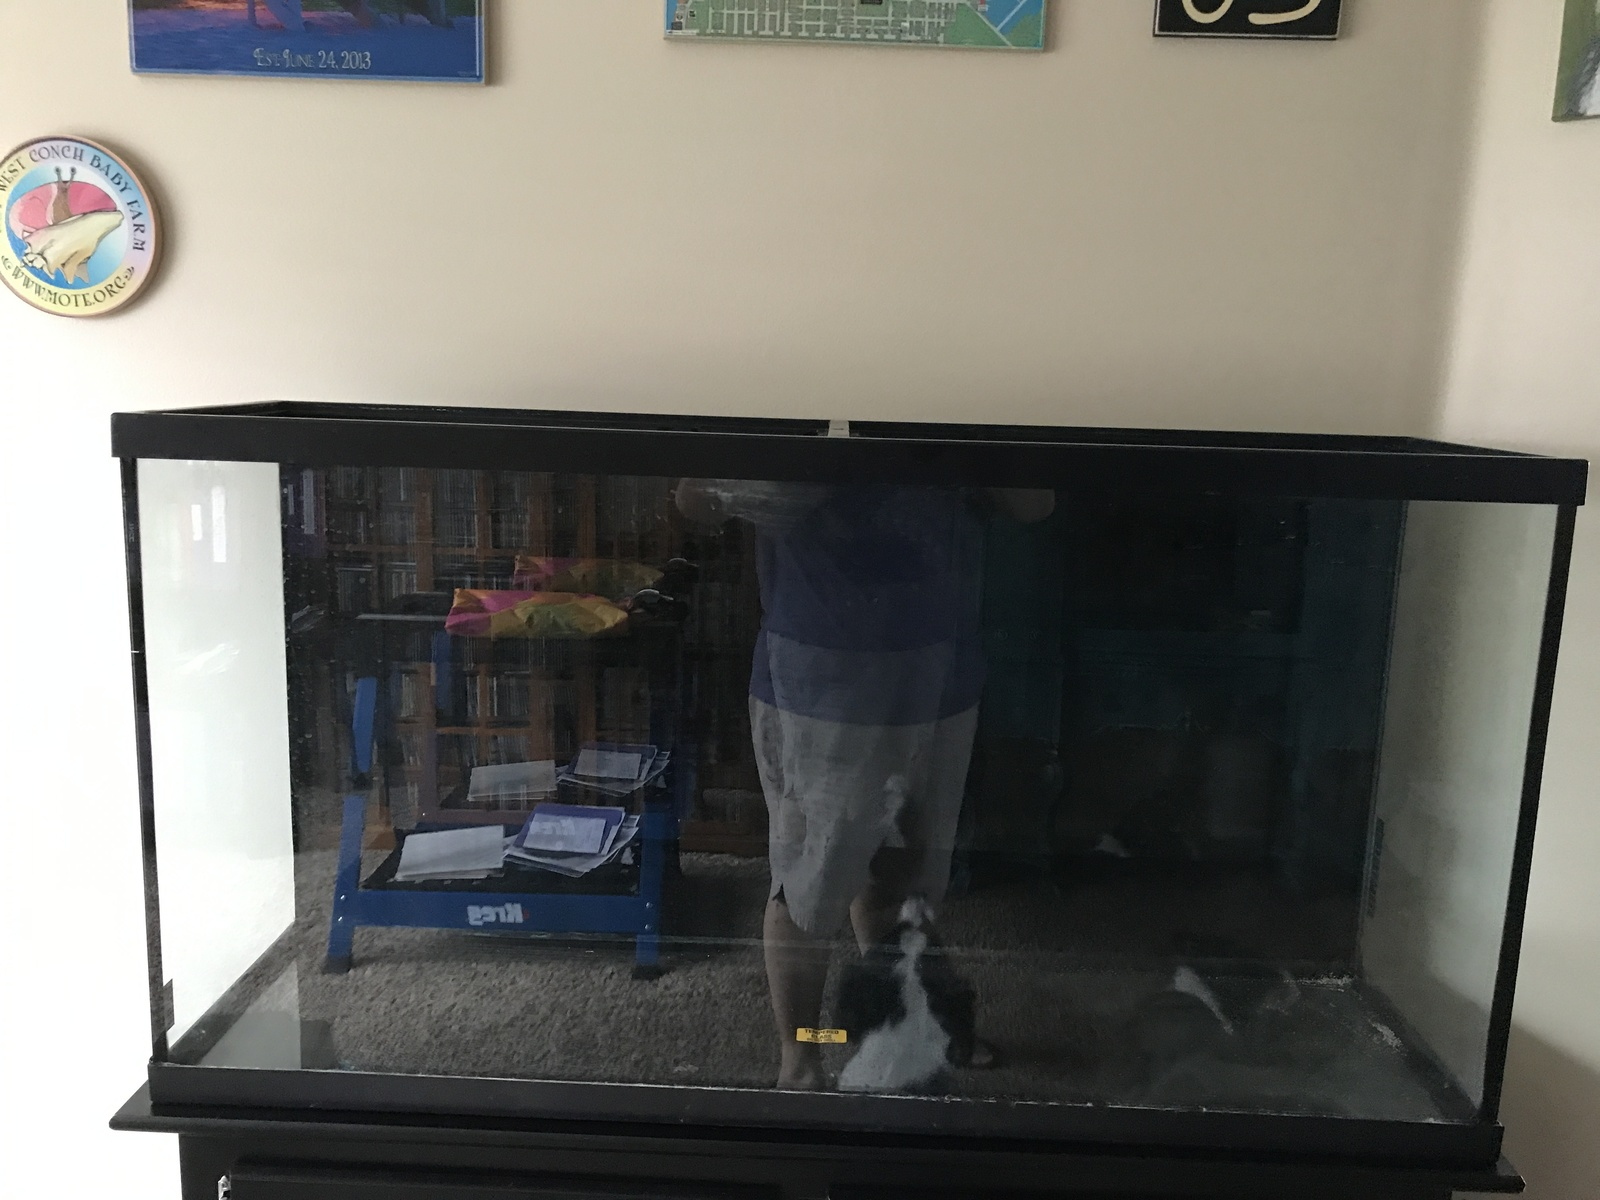 Beginnings of my 60g Lake Malawi Mbuna Tank